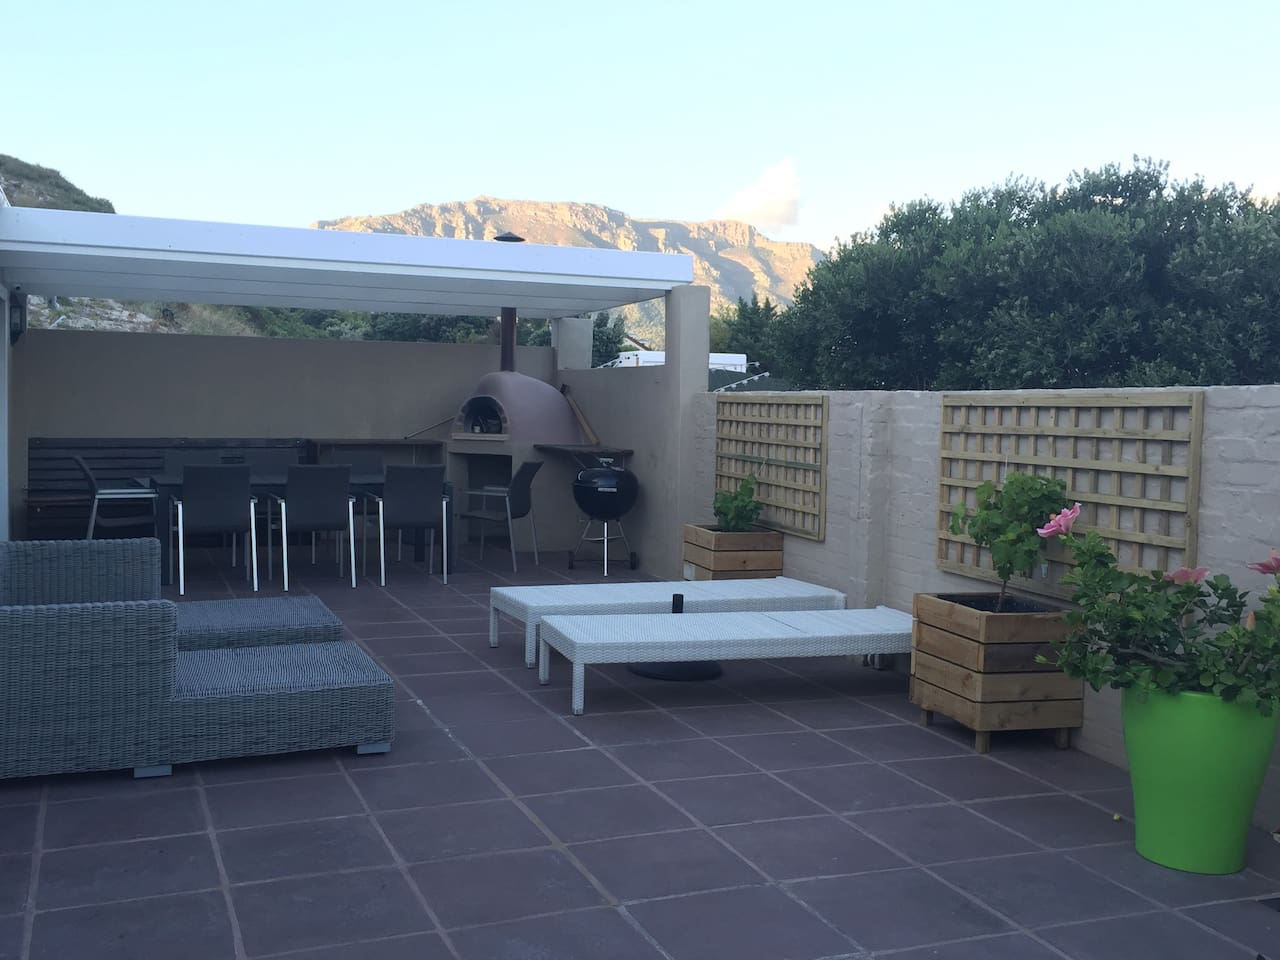 Pizza oven and outdoor lounging area